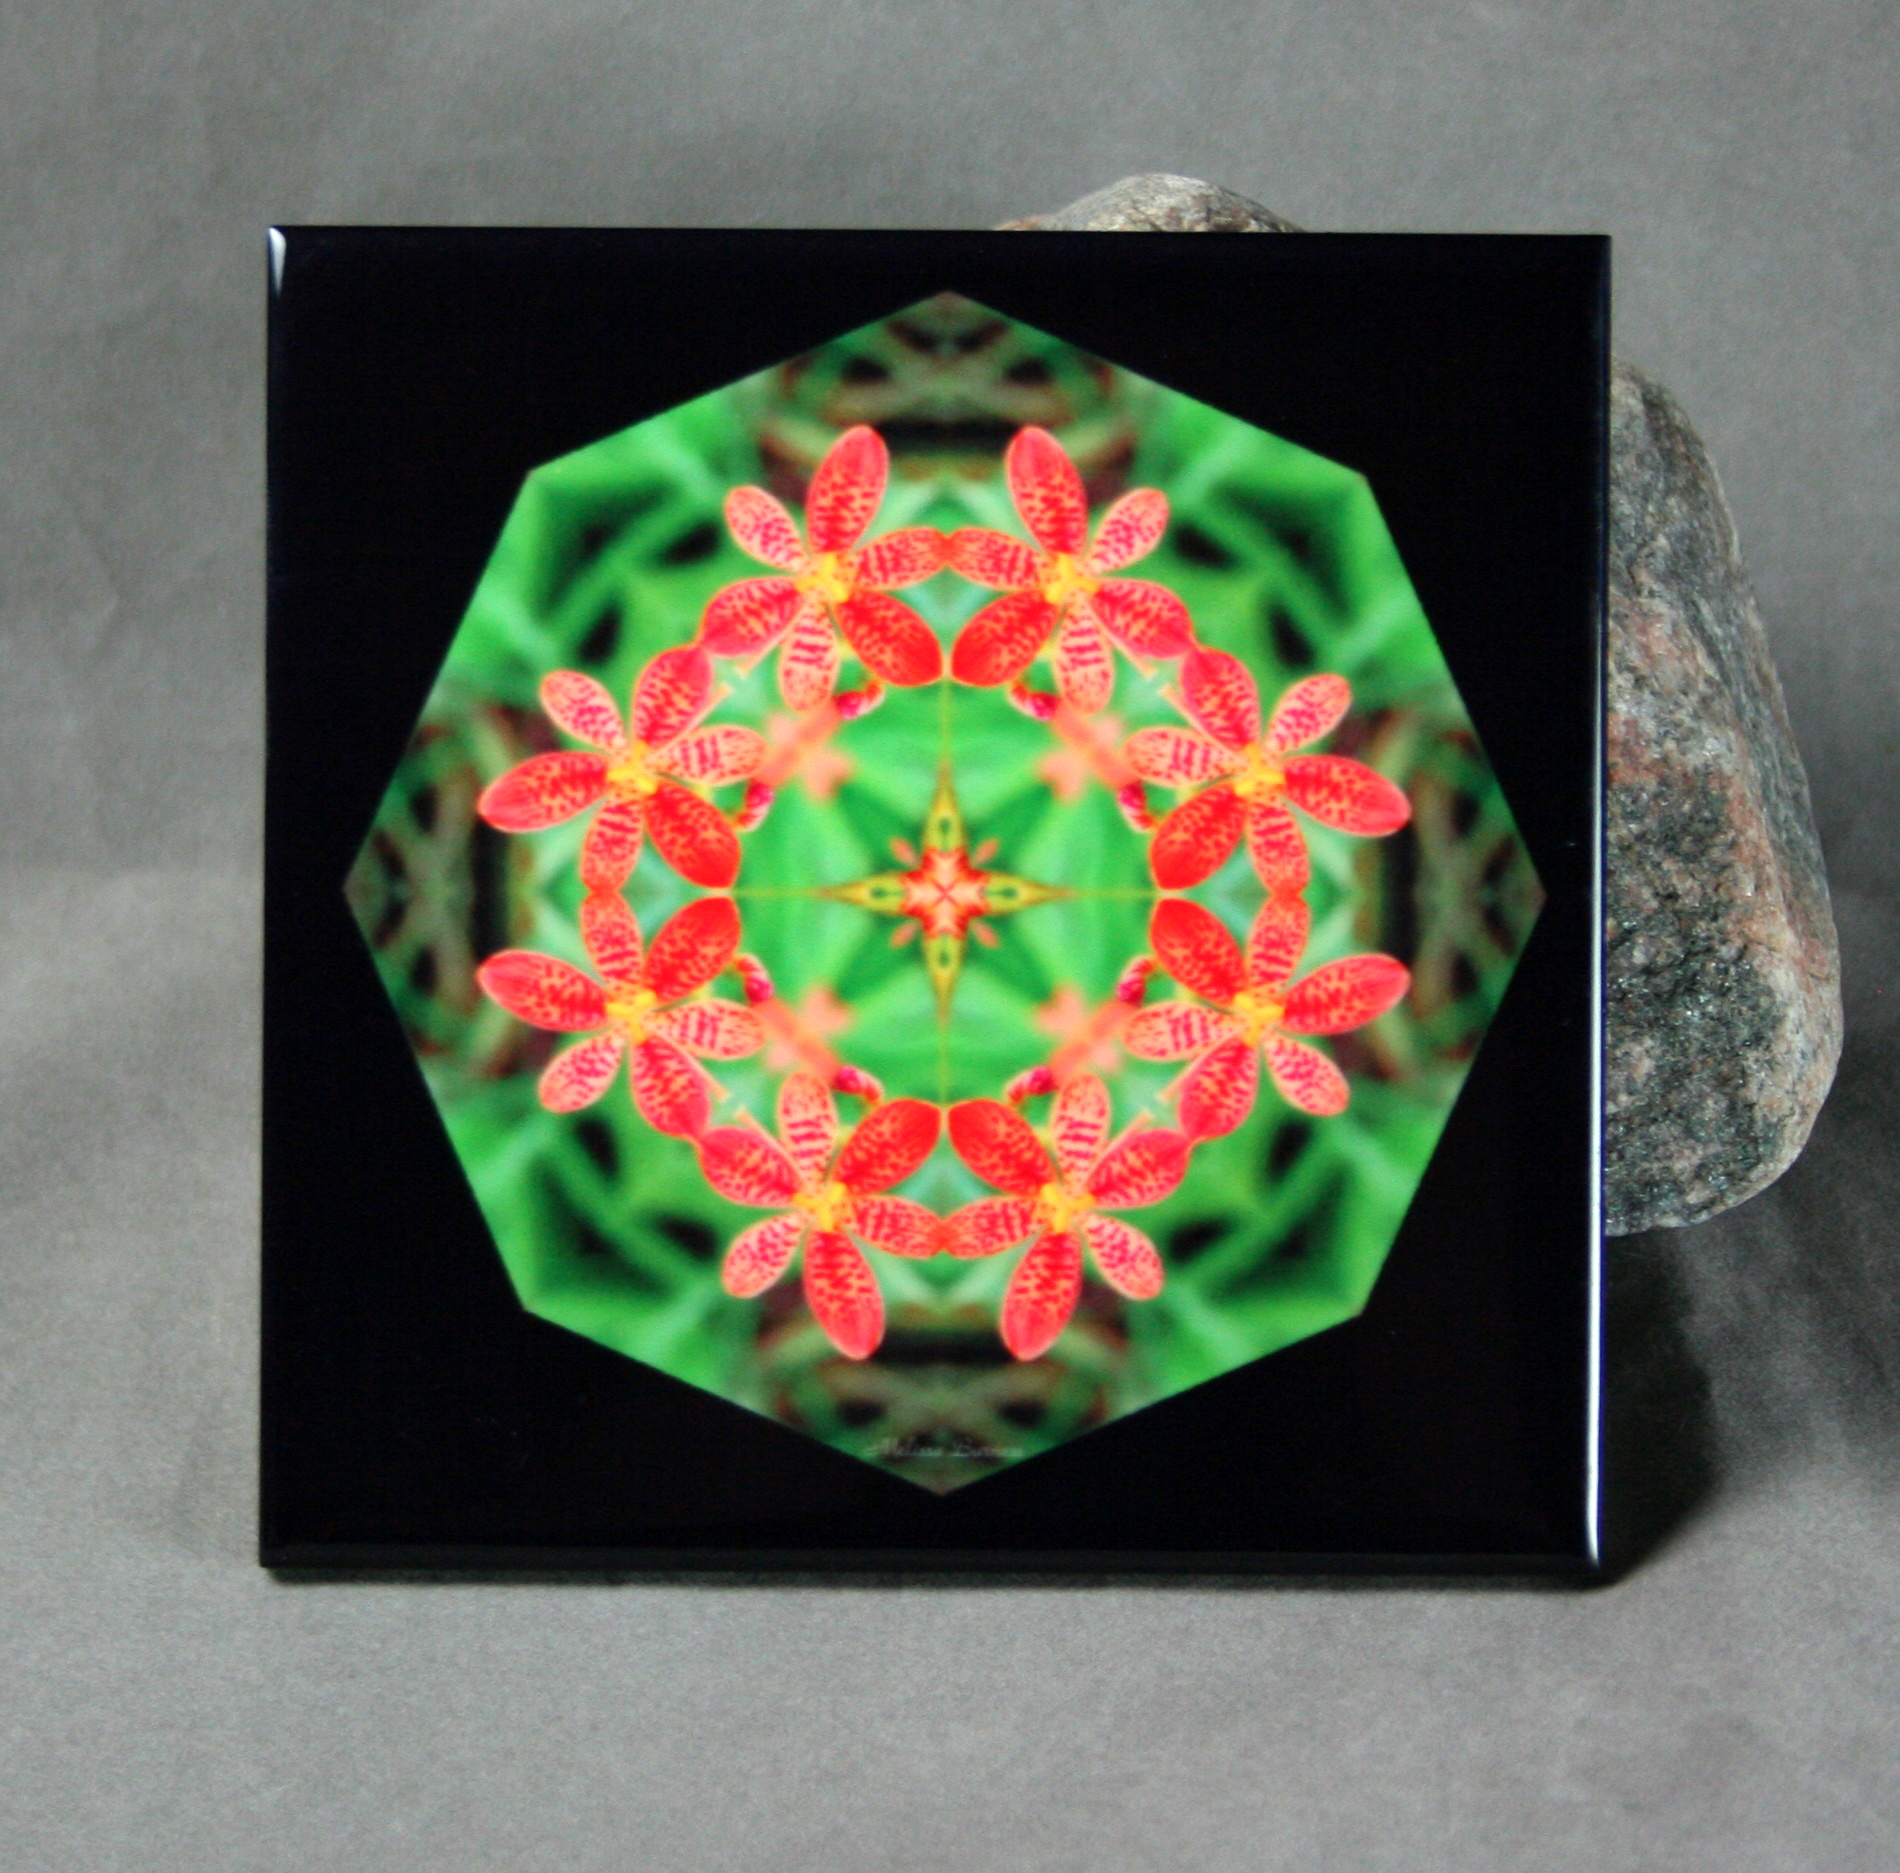 Lily Decorative Ceramic Tile Mandala Sacred Geometry Kaleidoscope Blooming Inspiration